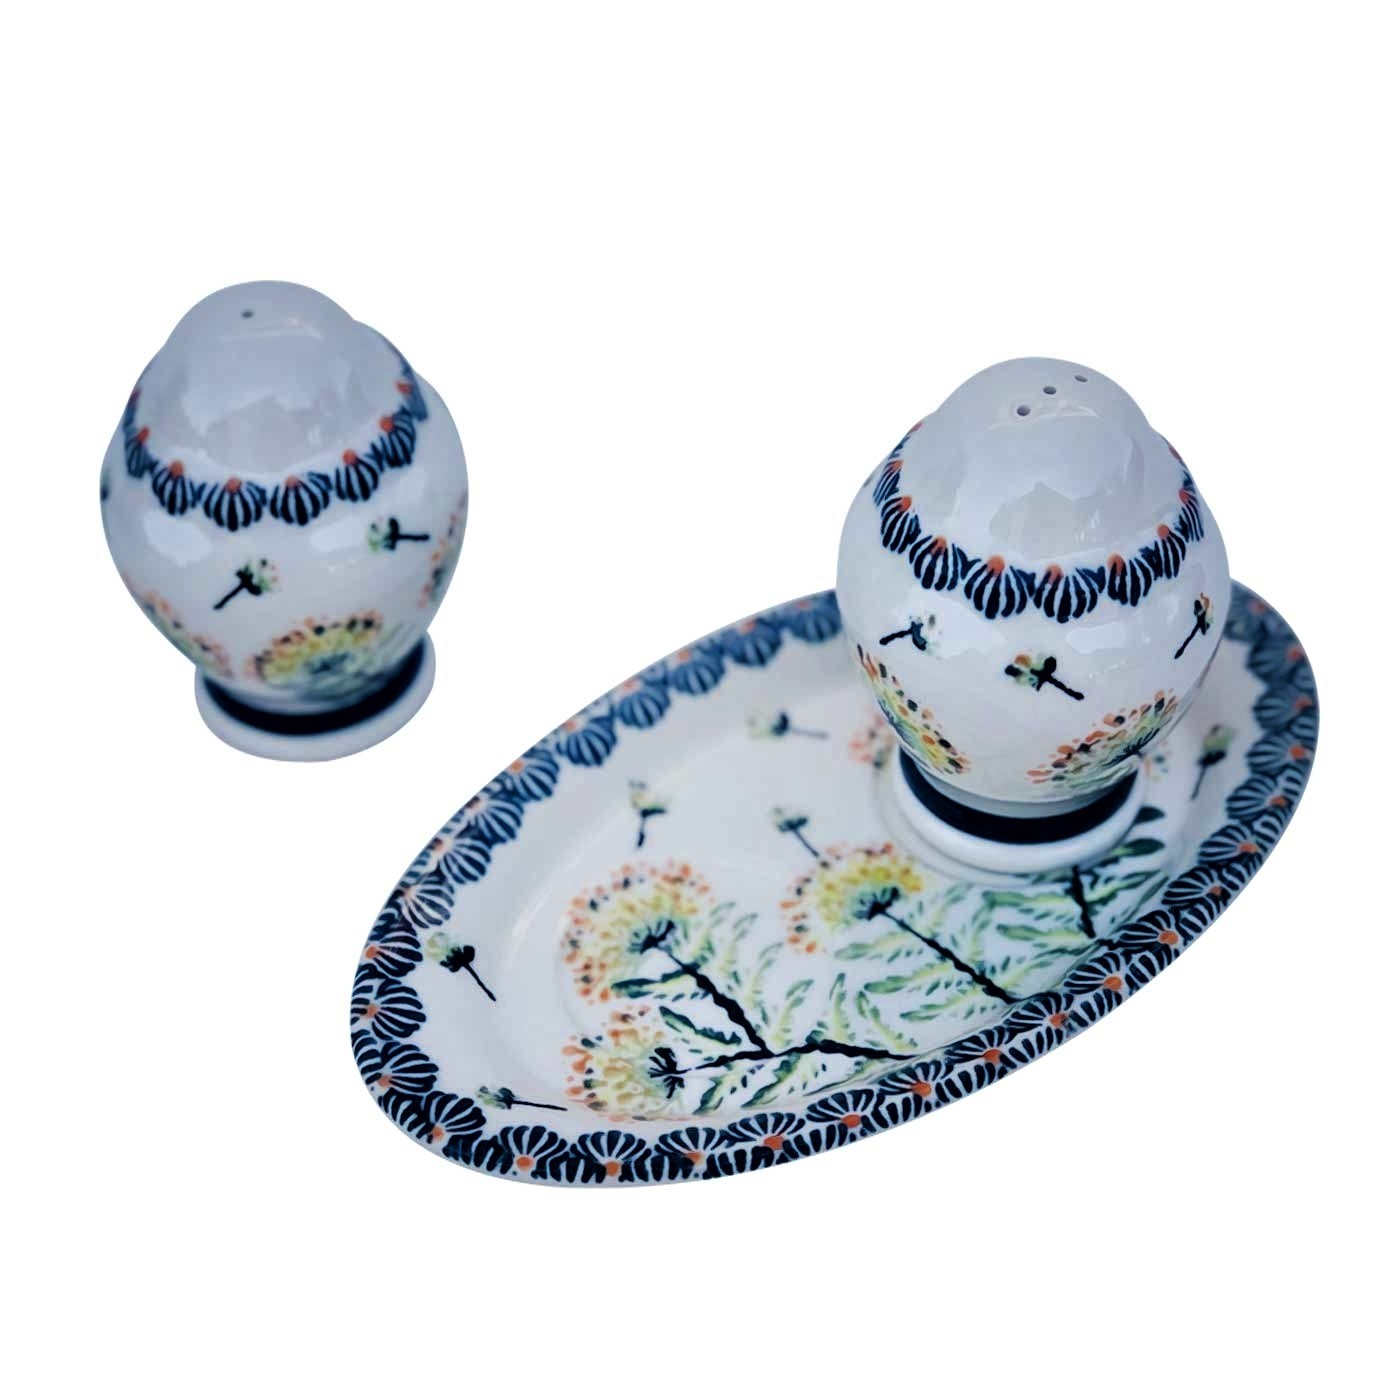 Pottery Avenue Wish 3pc Stoneware Salt and Pepper with Tray - 1284-961-DU201 Wish